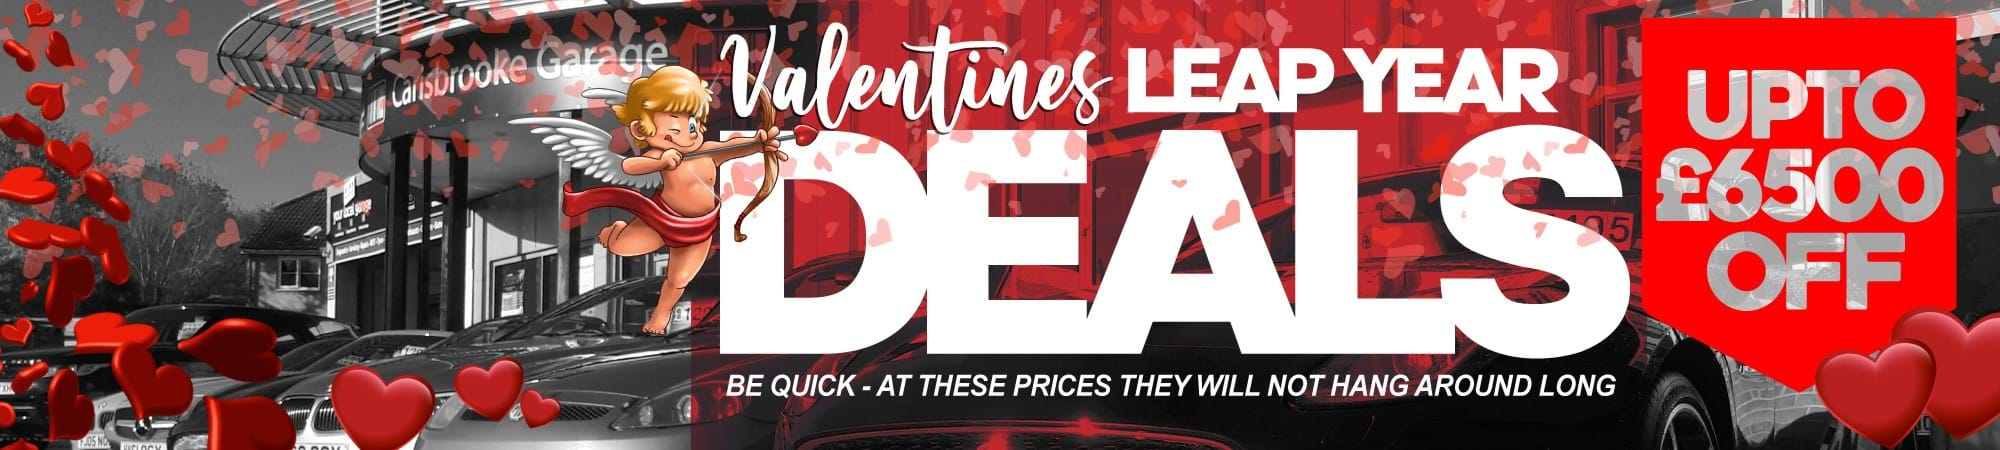 Valentine Leap Year Used Car Deals On The Isle Of Wight - Sixers Group